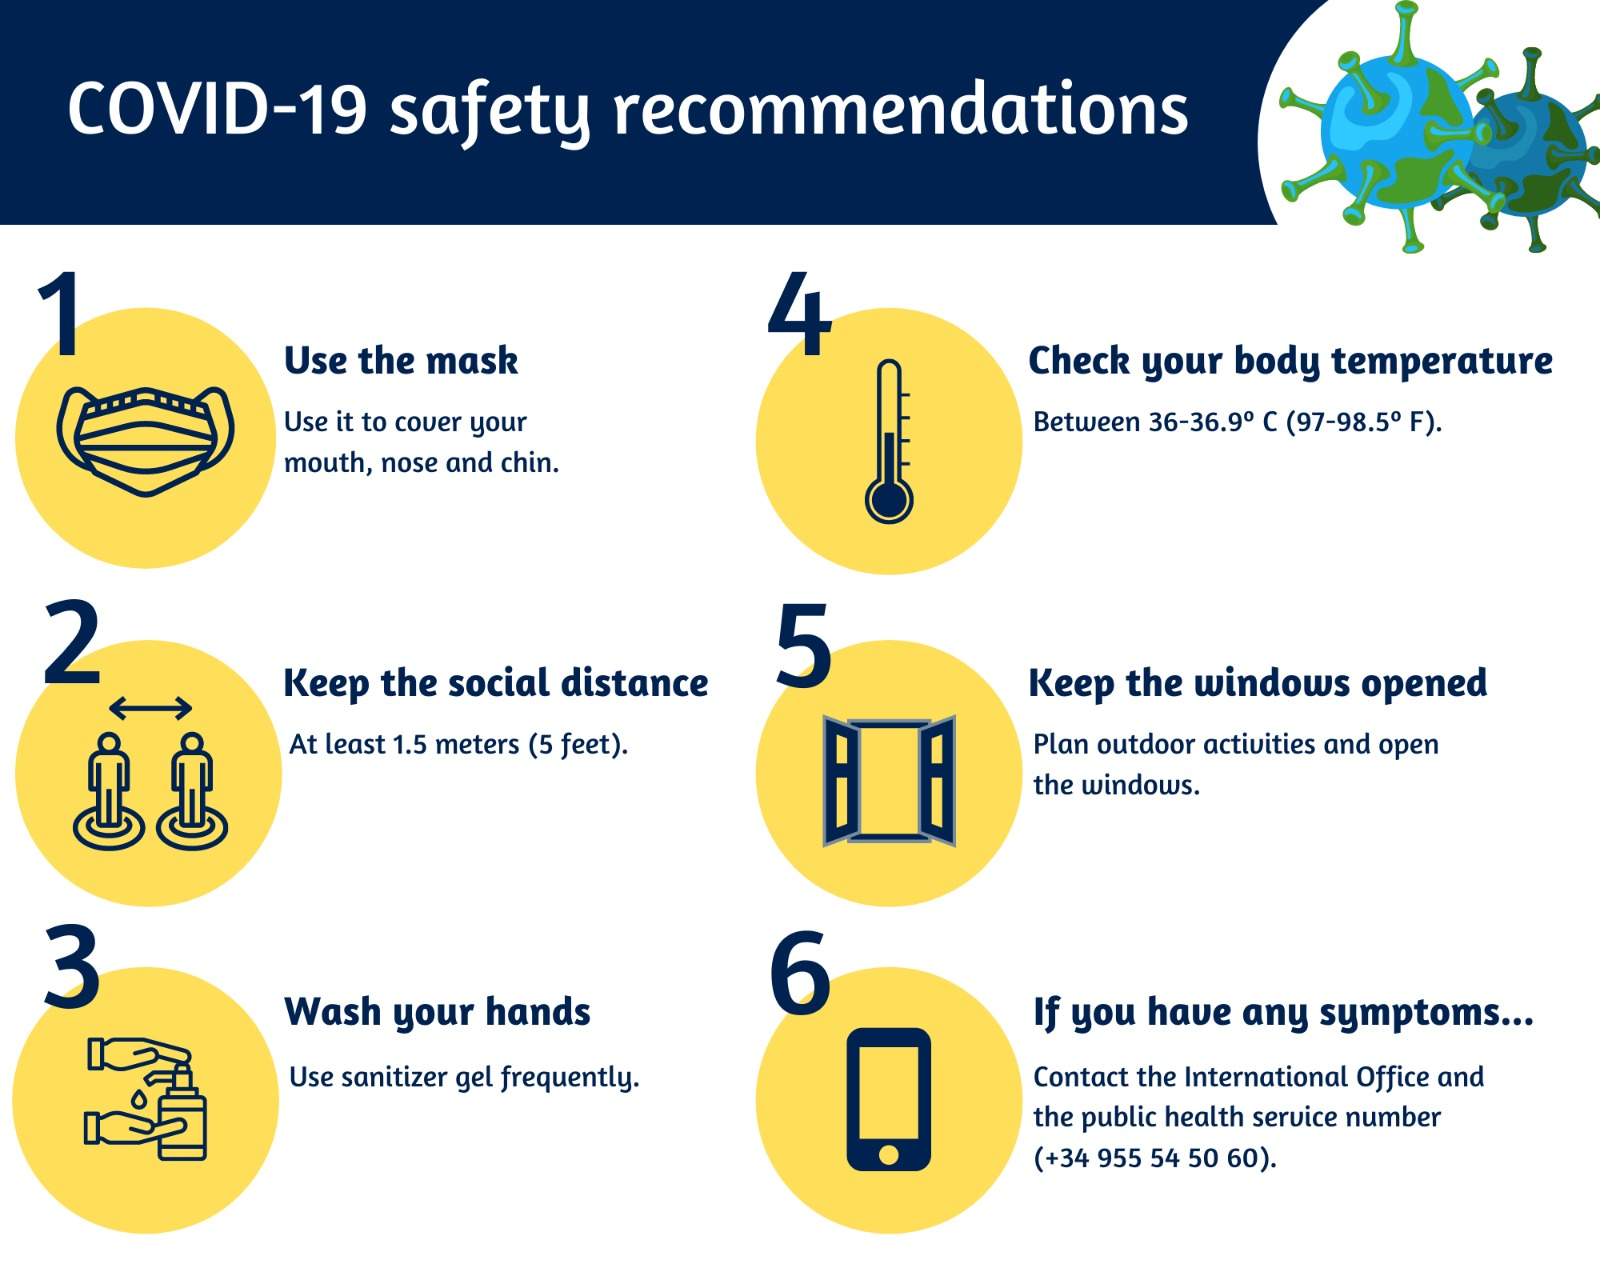 COVID-19 safety recommendations